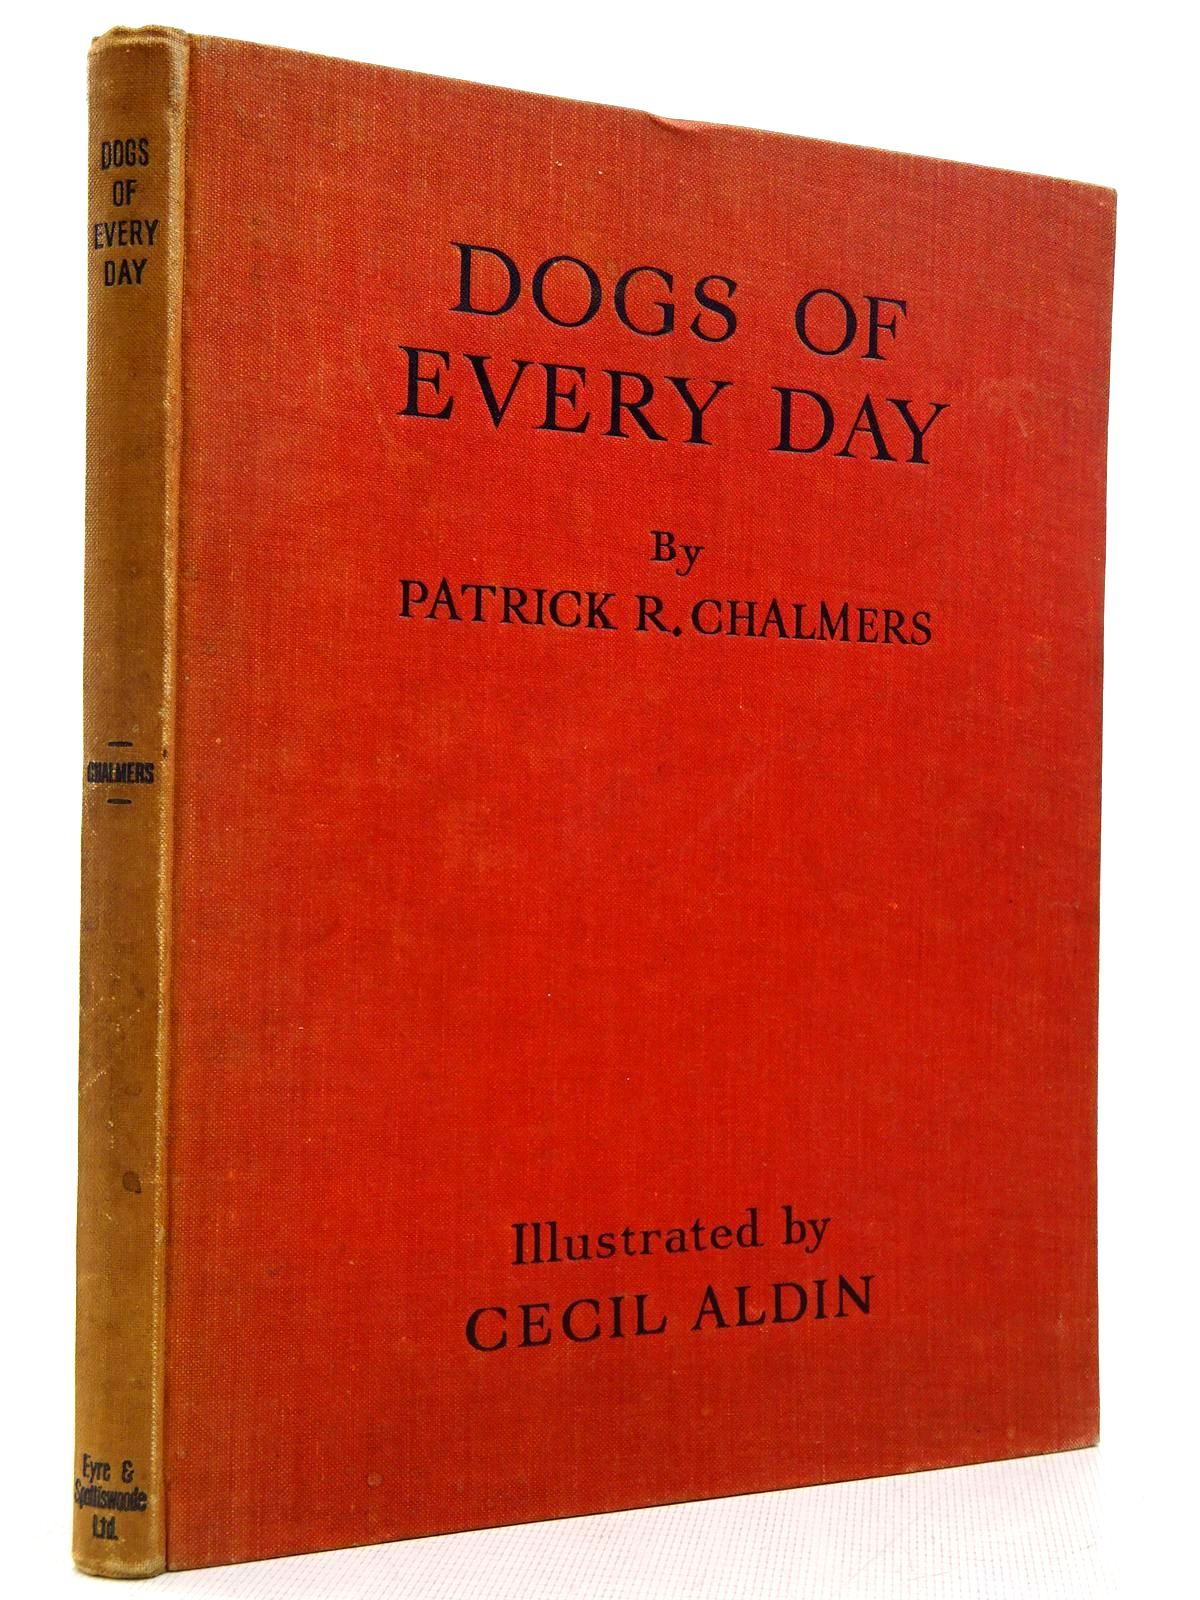 Photo of DOGS OF EVERY DAY written by Chalmers, Patrick R. illustrated by Aldin, Cecil published by Eyre & Spottiswoode Limited (STOCK CODE: 2129089)  for sale by Stella & Rose's Books